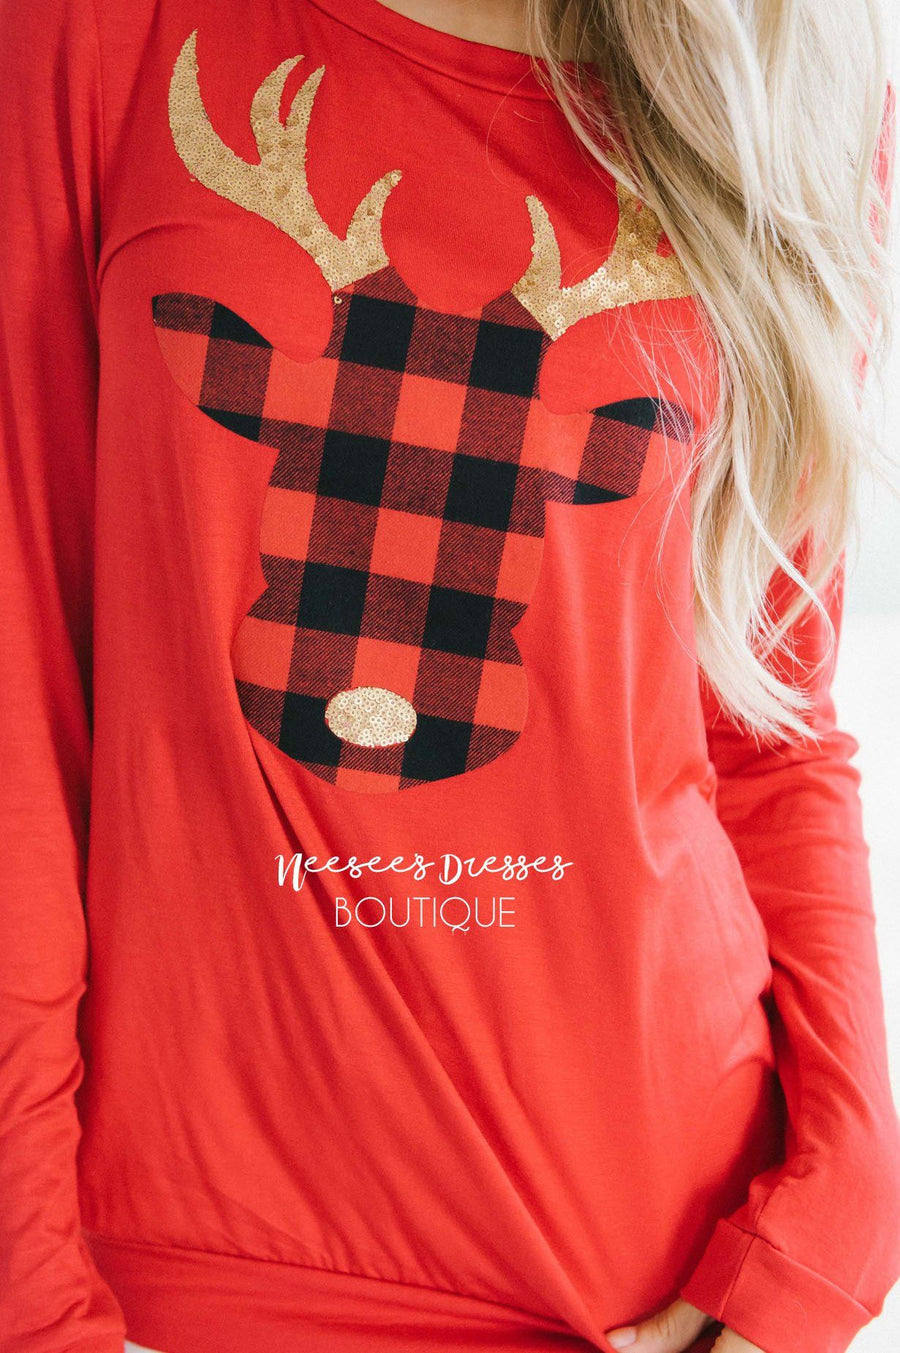 Sleigh Ride Plaid Reindeer Sweater